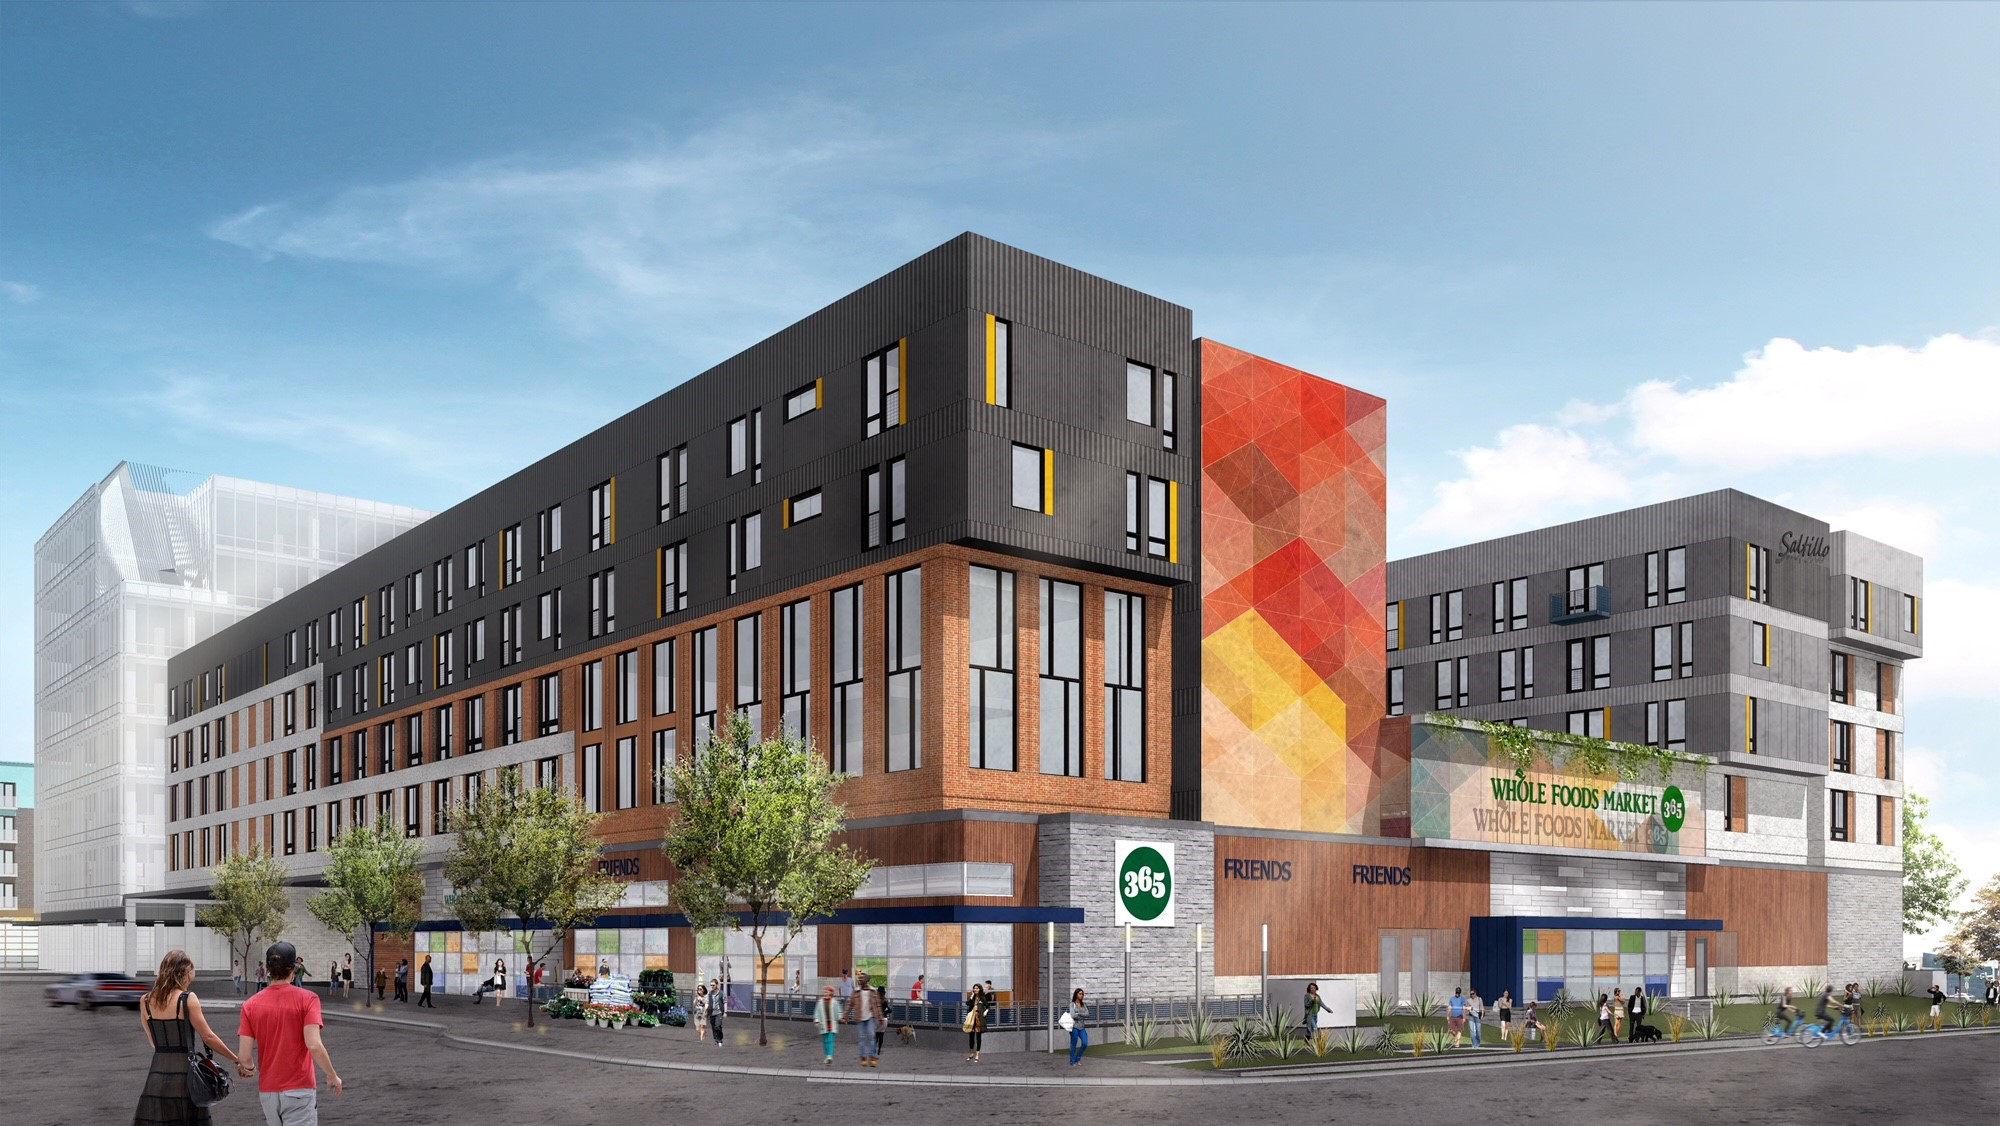 Rendering of Whole Foods Market 365 at Plaza Saltillo